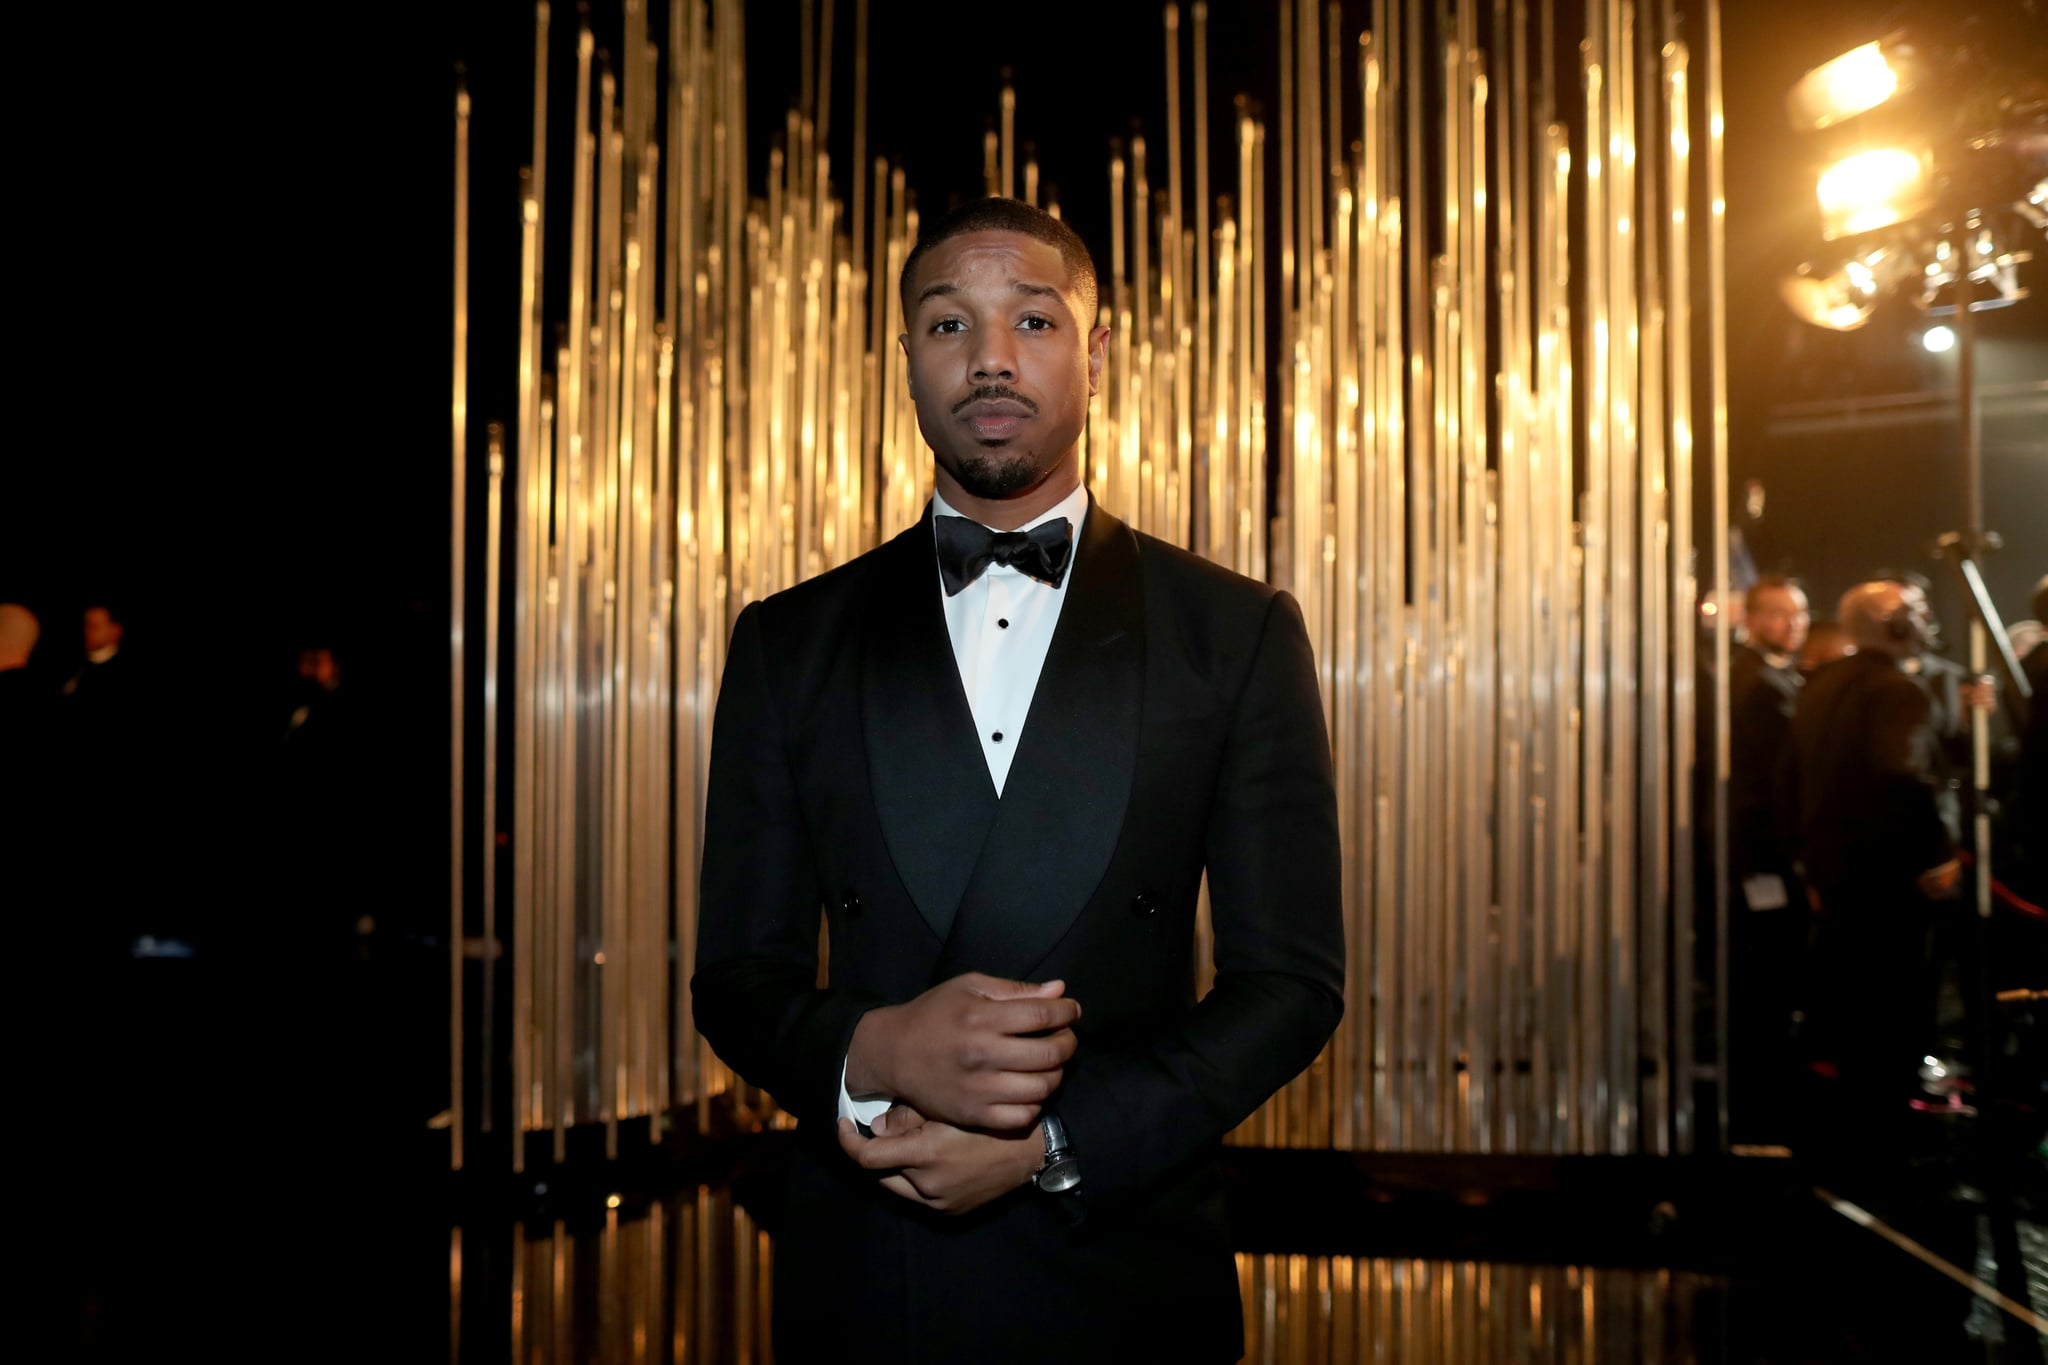 HOLLYWOOD, CA - FEBRUARY 28:  Actor Michael B. Jordan attends the 88th Annual Academy Awards at Dolby Theatre on February 28, 2016 in Hollywood, California.  (Photo by Christopher Polk/Getty Images)